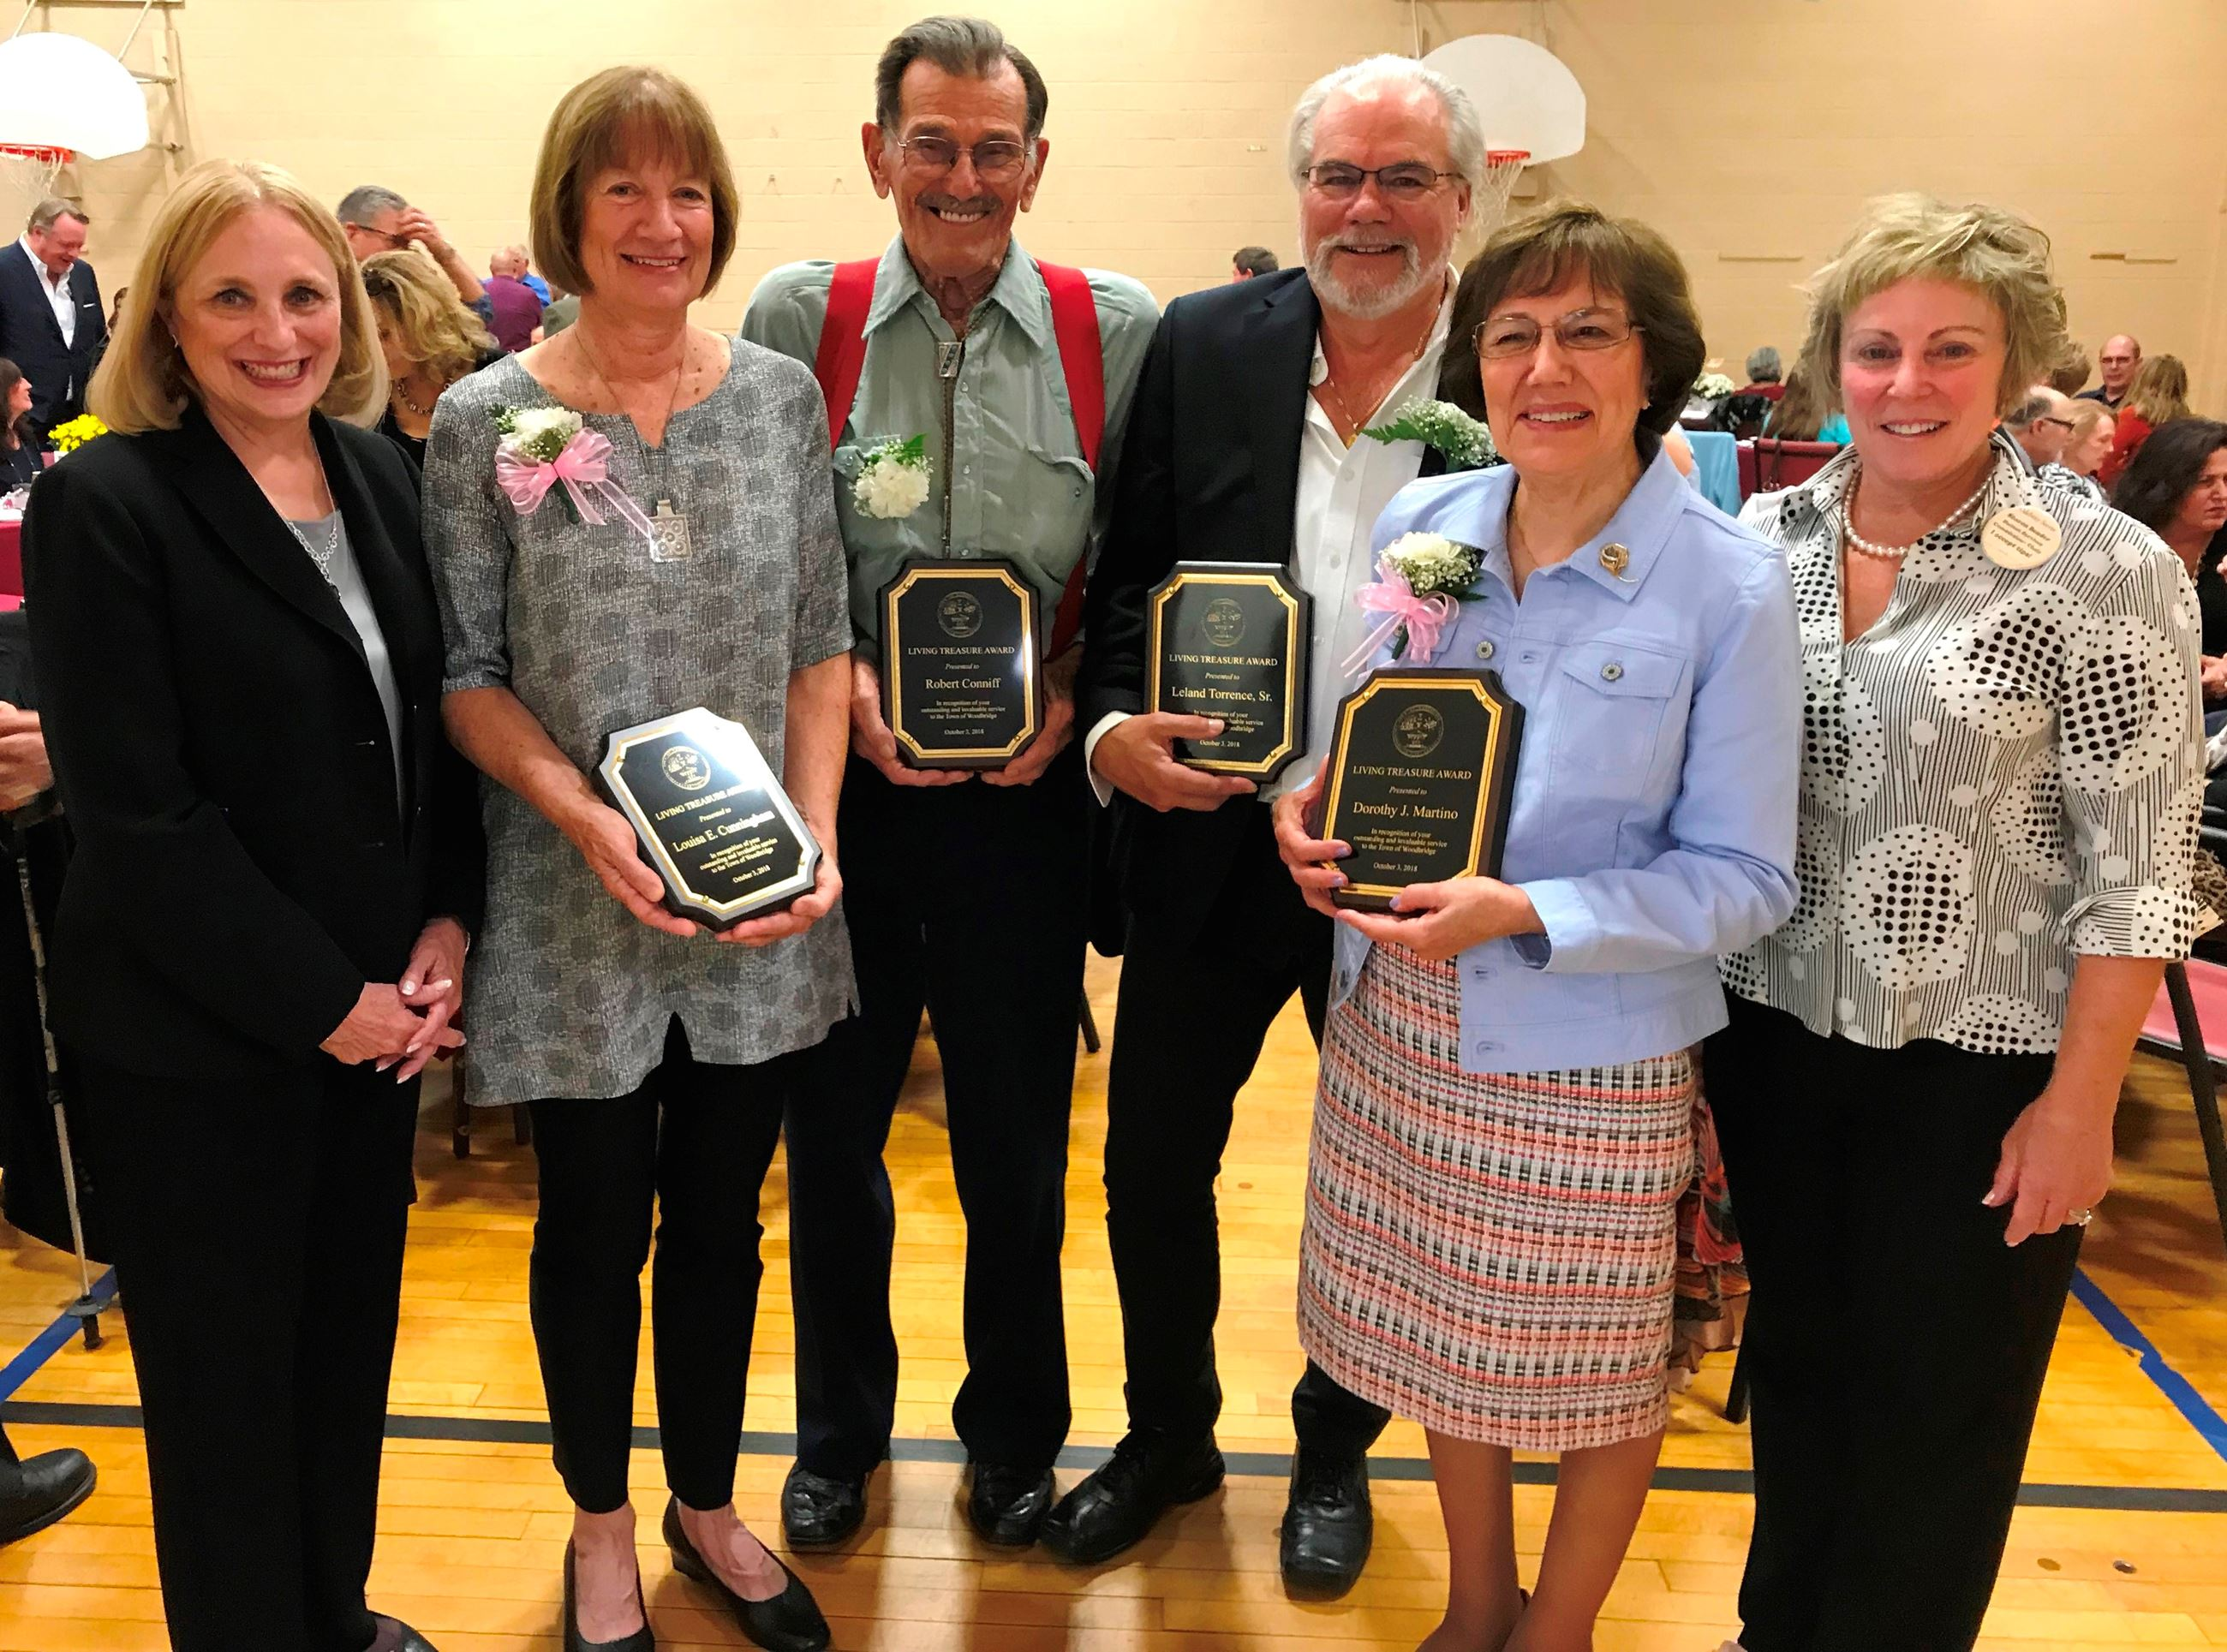 1st Selectman Beth Heller with our 2018 Award Winners and Human Services Chair Sharon Bender